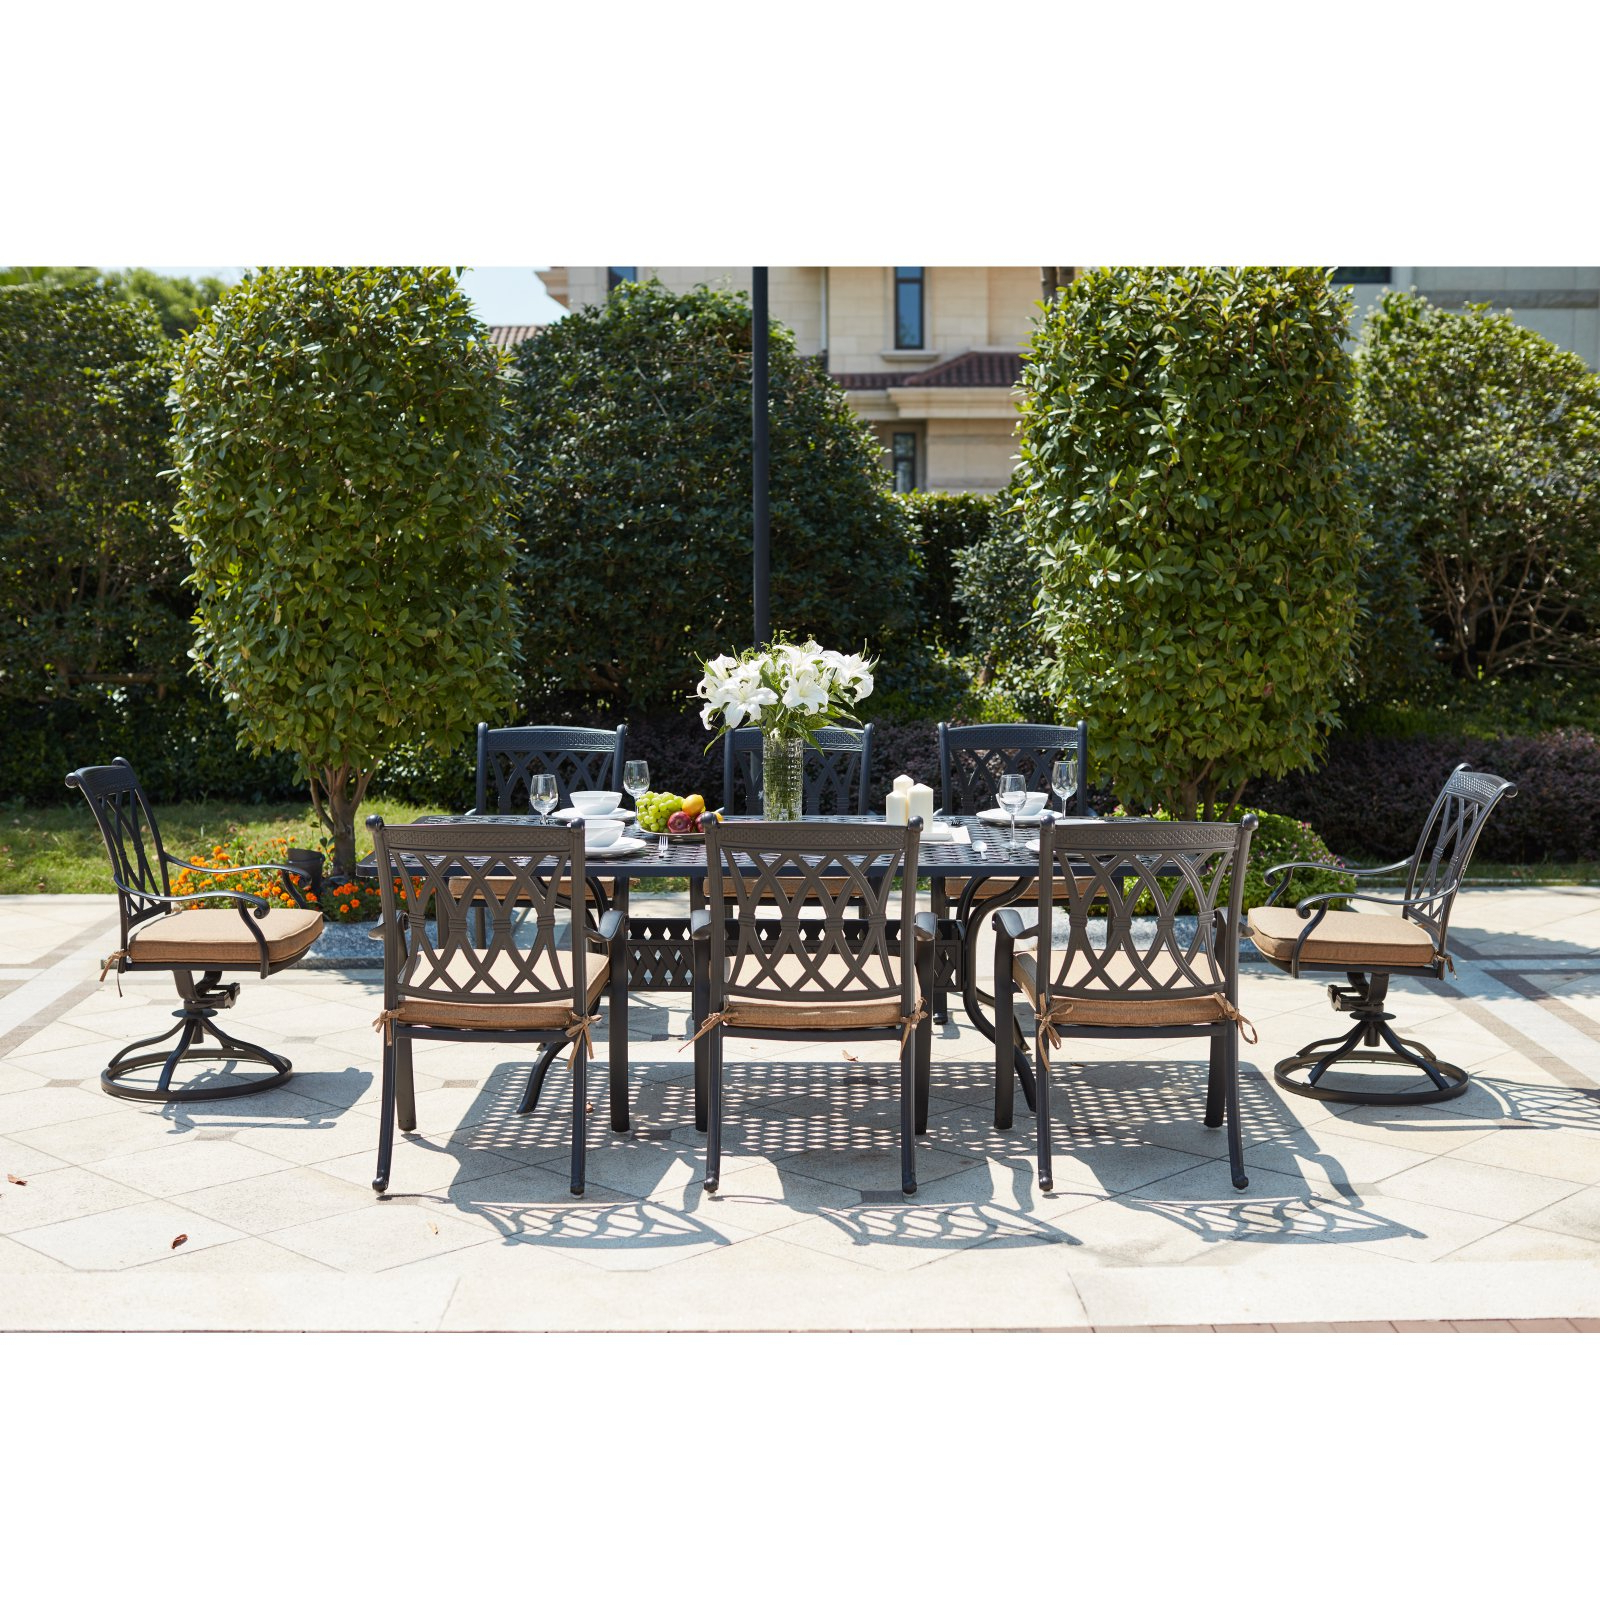 Outdoor Darlee Capri 9 Piece Aluminum Rectangular Patio With Regard To Well Known Havenside Home Fenwick Chaise Lounge Chairs (Gallery 24 of 25)